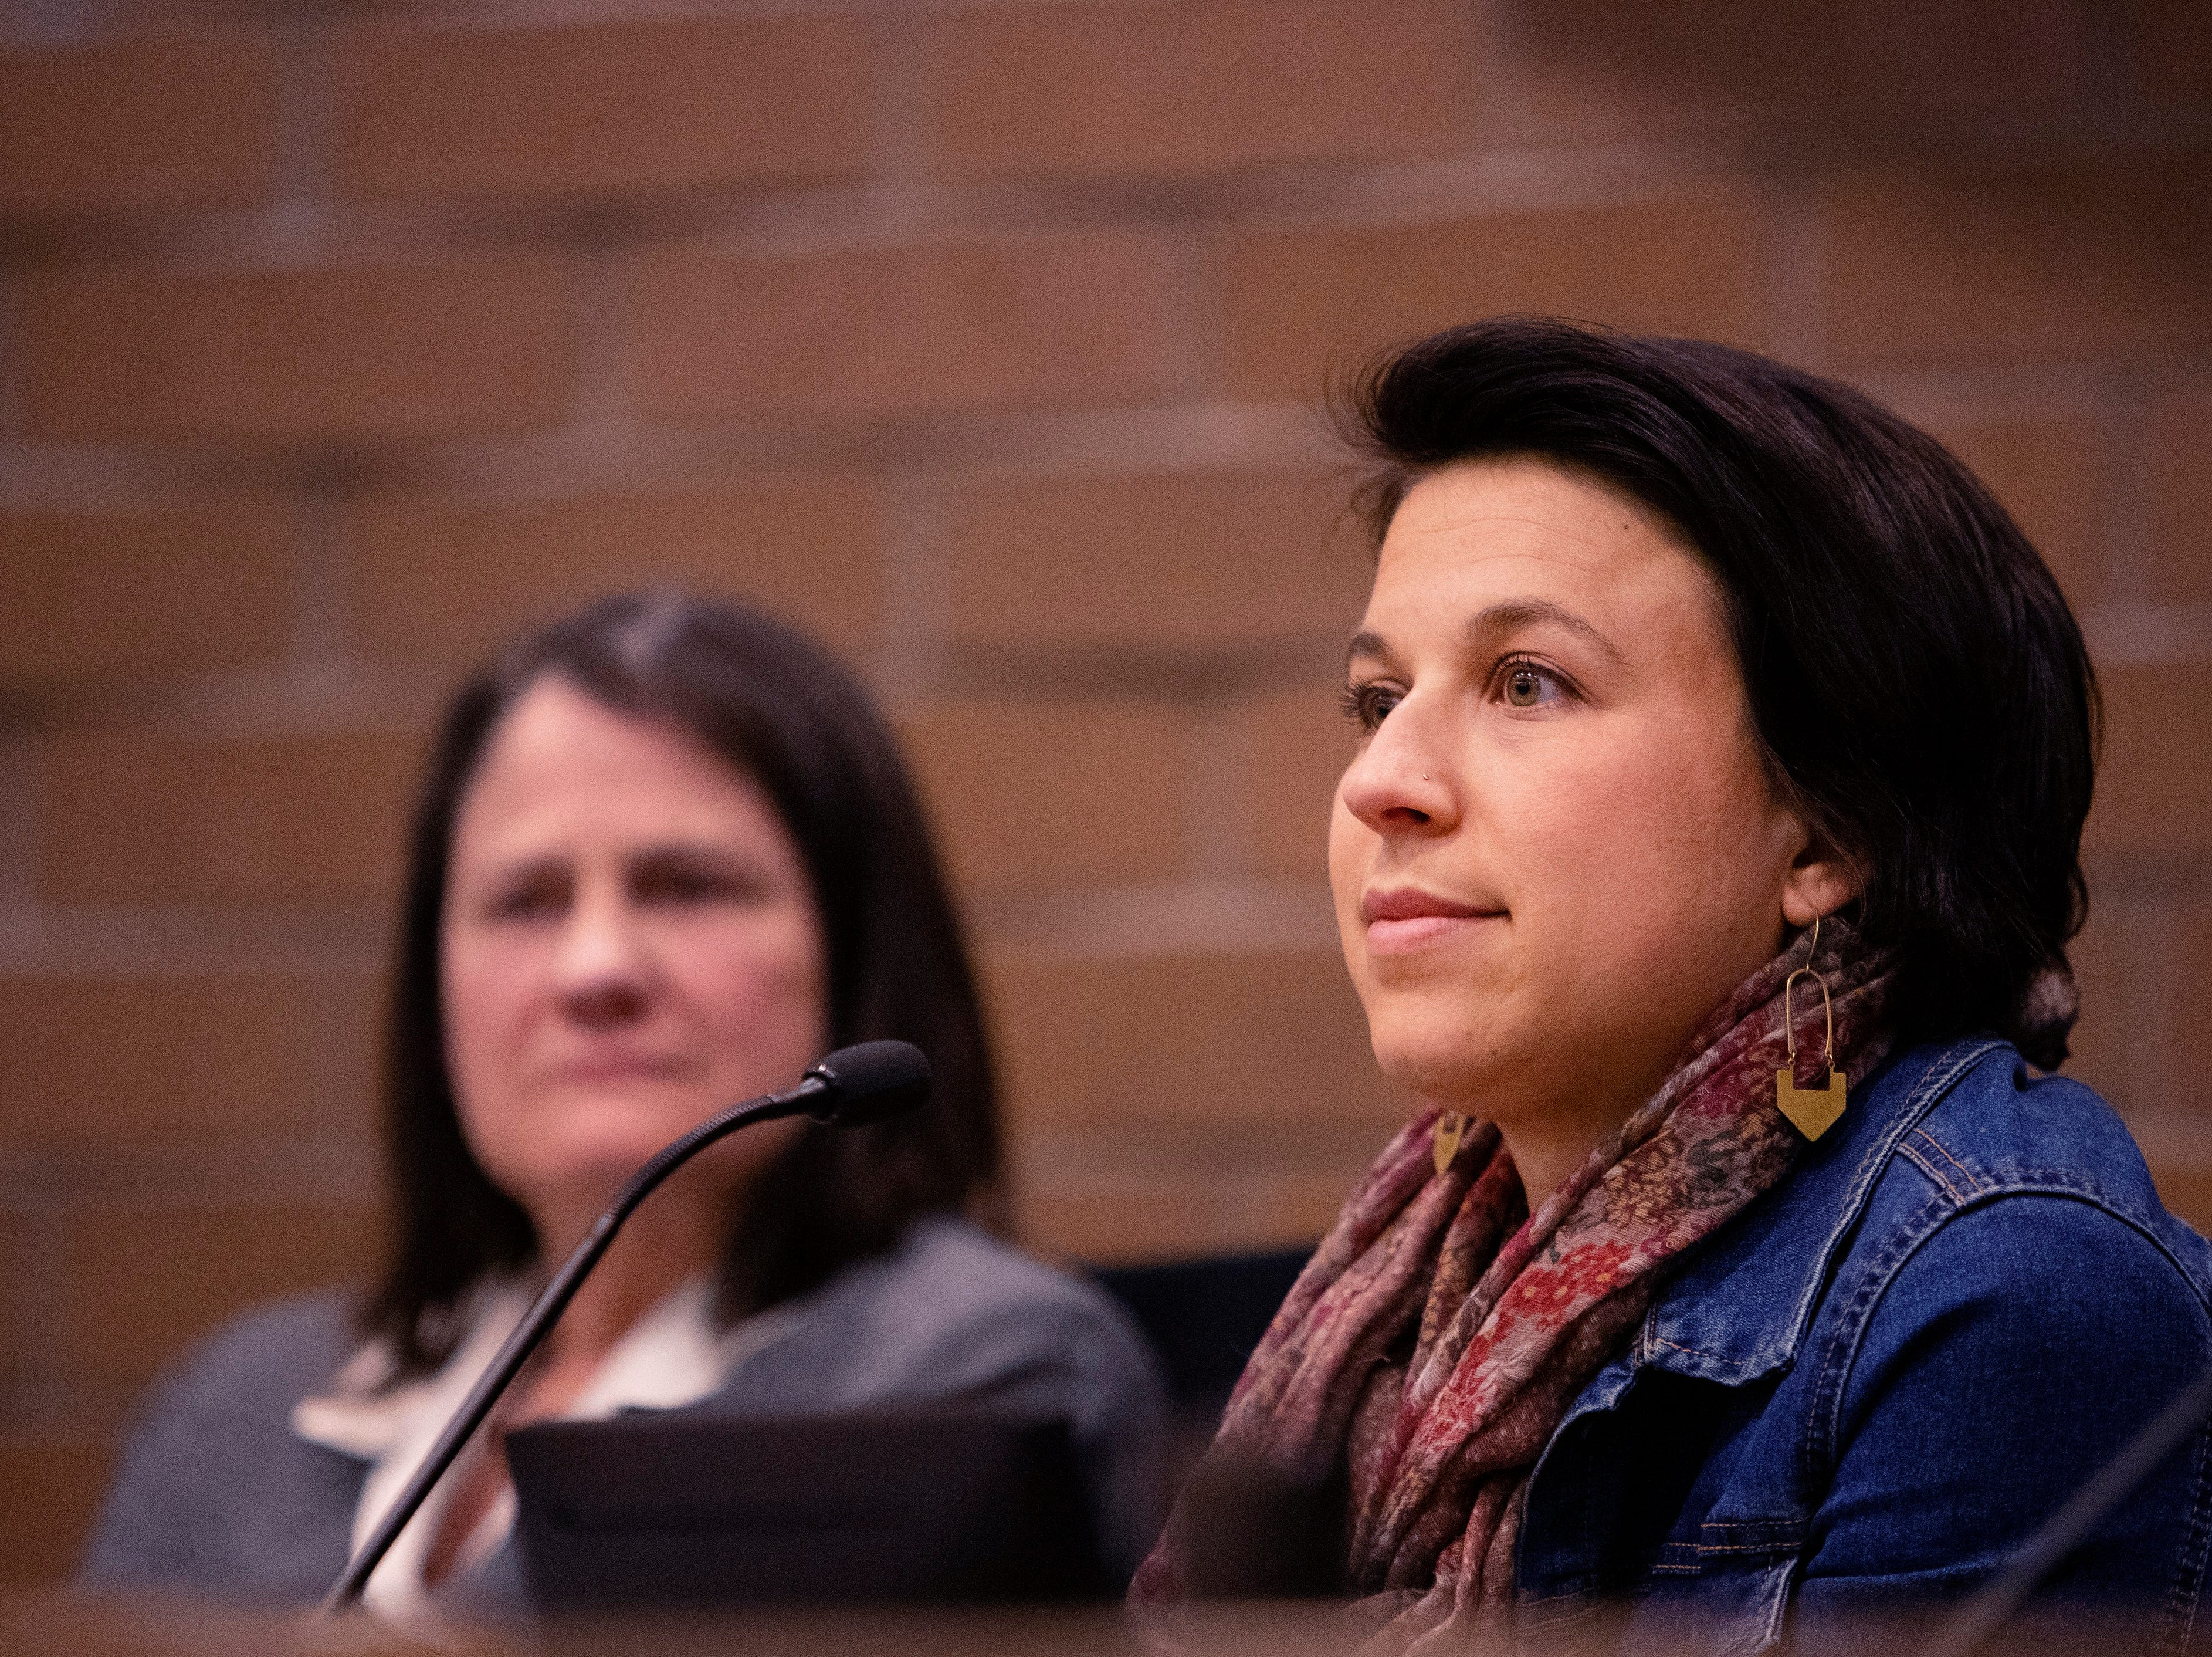 City Council candidate Emily Gorgol participates in the candidate forum hosted by The League of  Women Voters of Larimer County at City Hall on March 6.